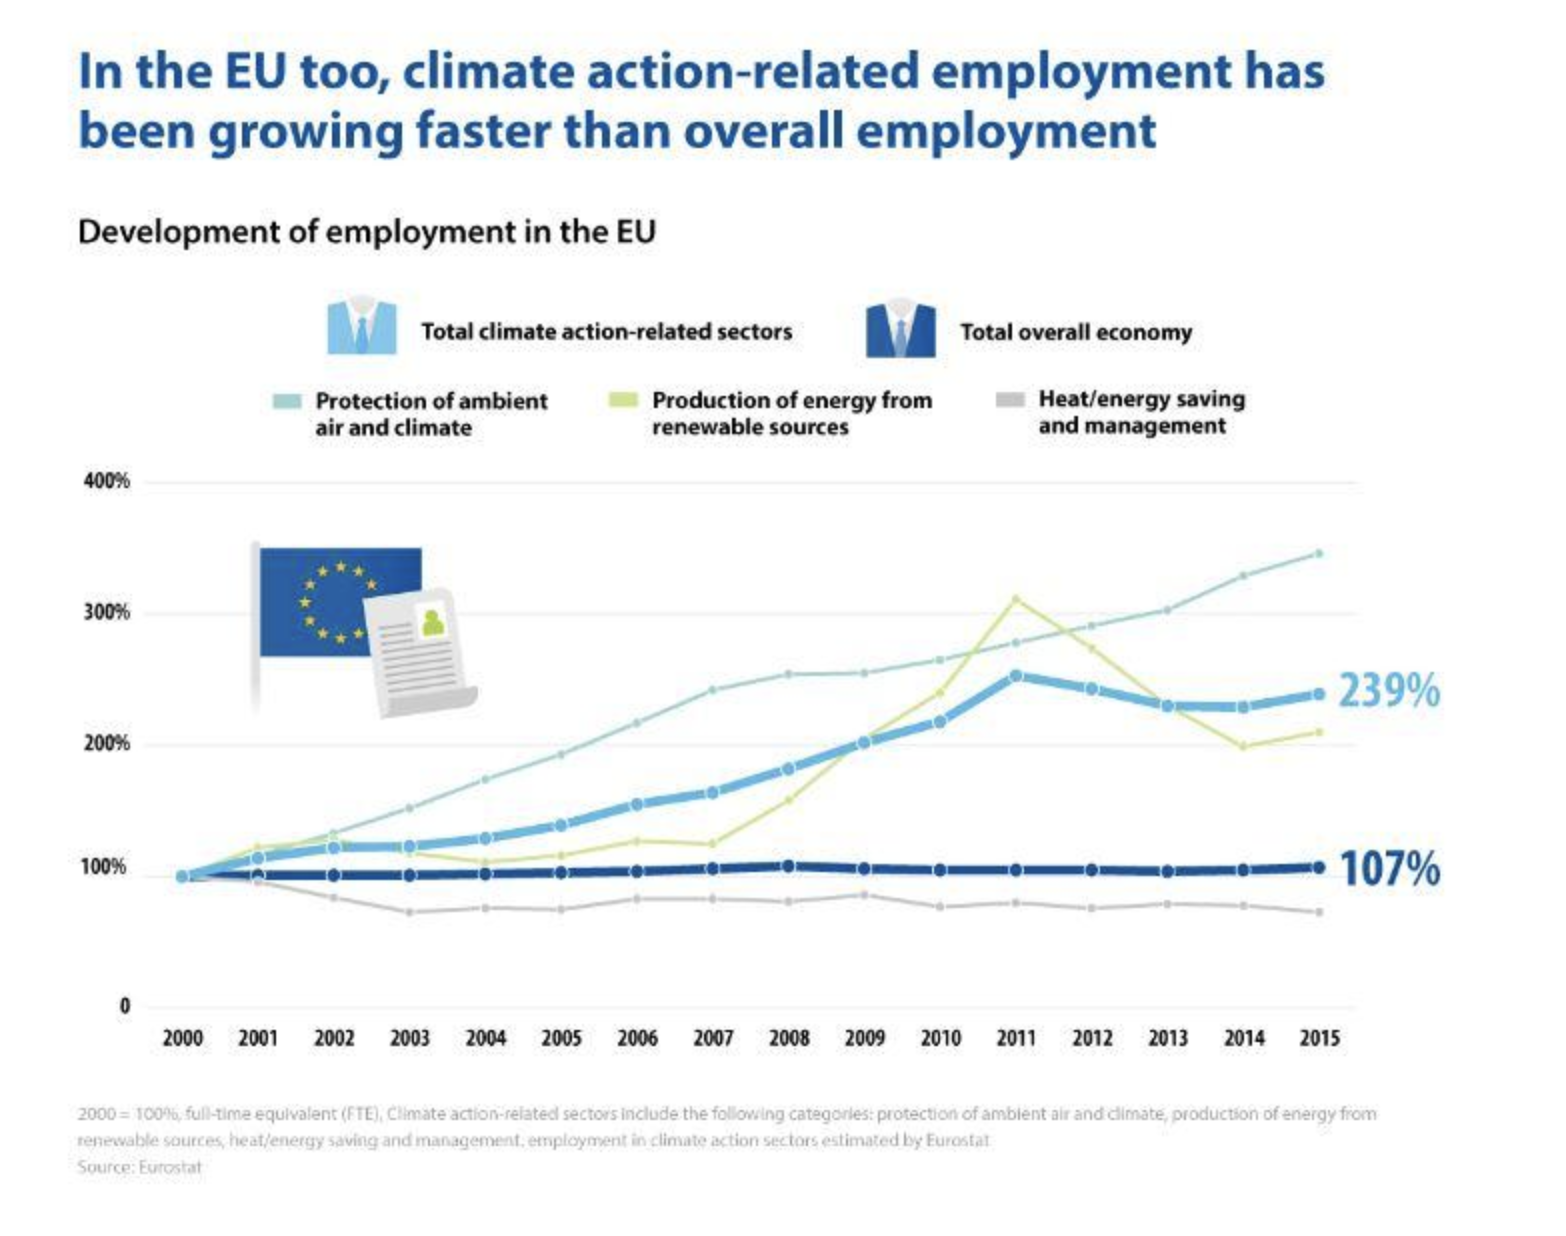 Climate action-related job growth has far outpaced other sectors this century